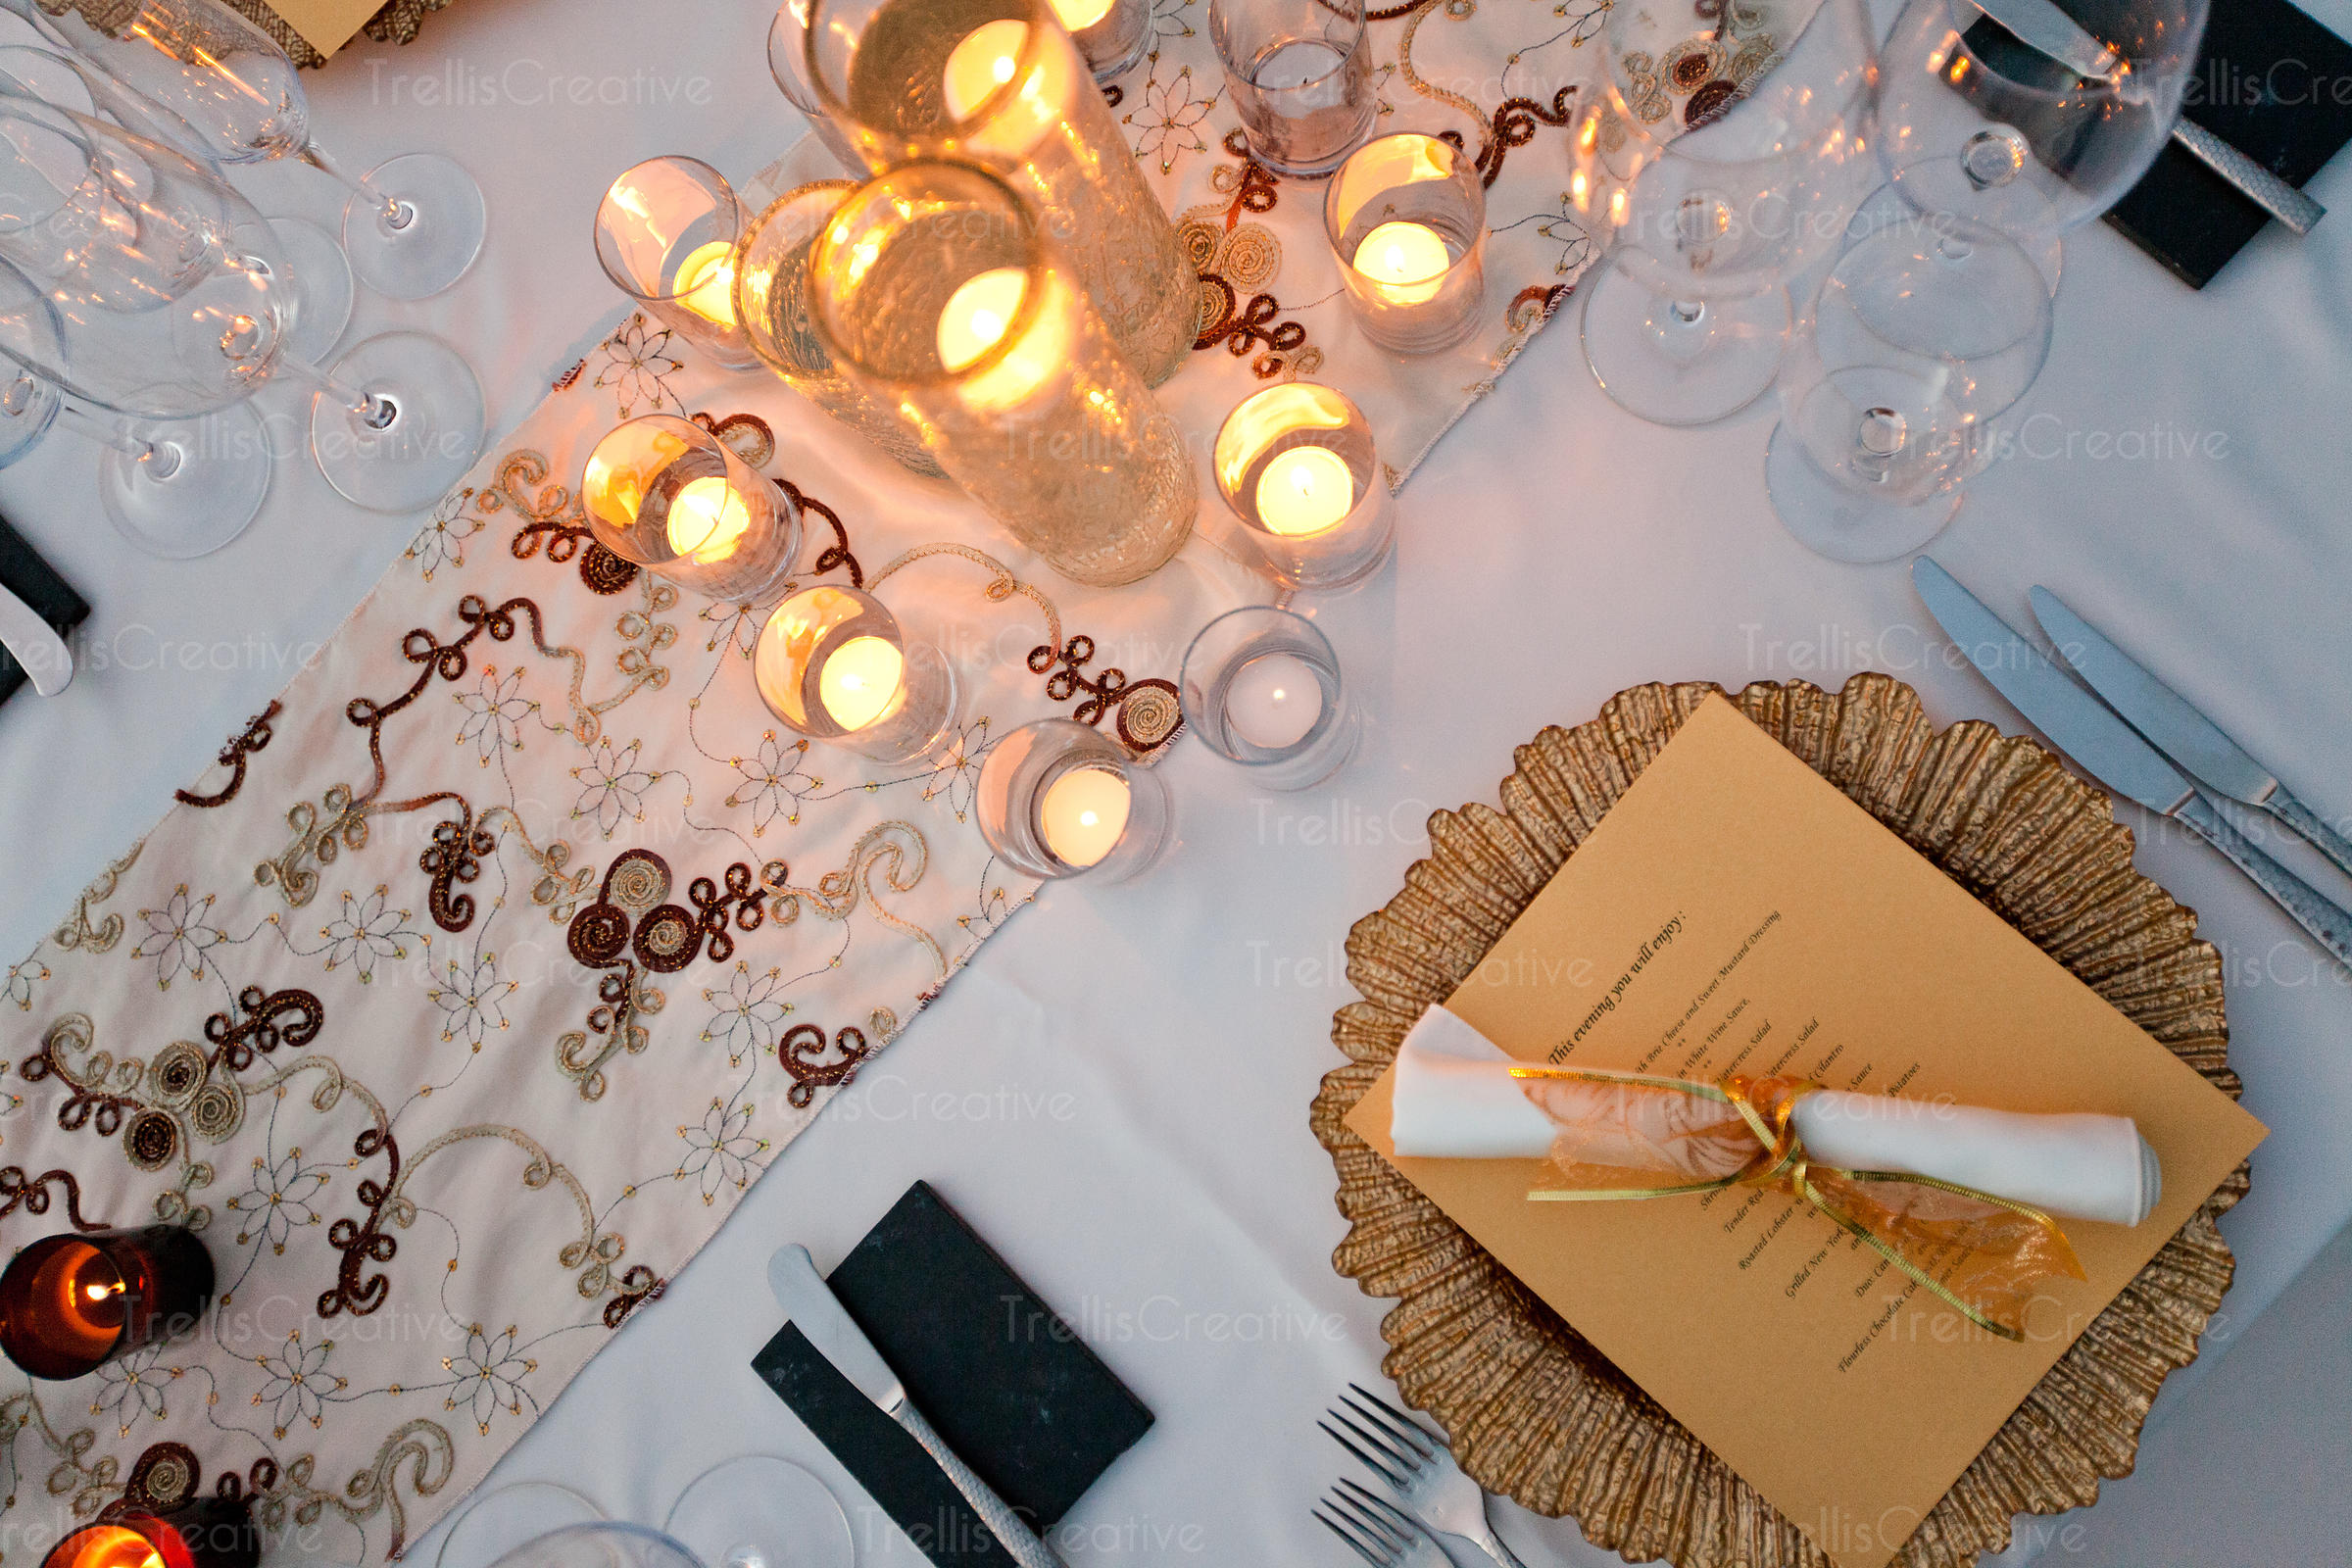 An elegant candle light placesetting at a party